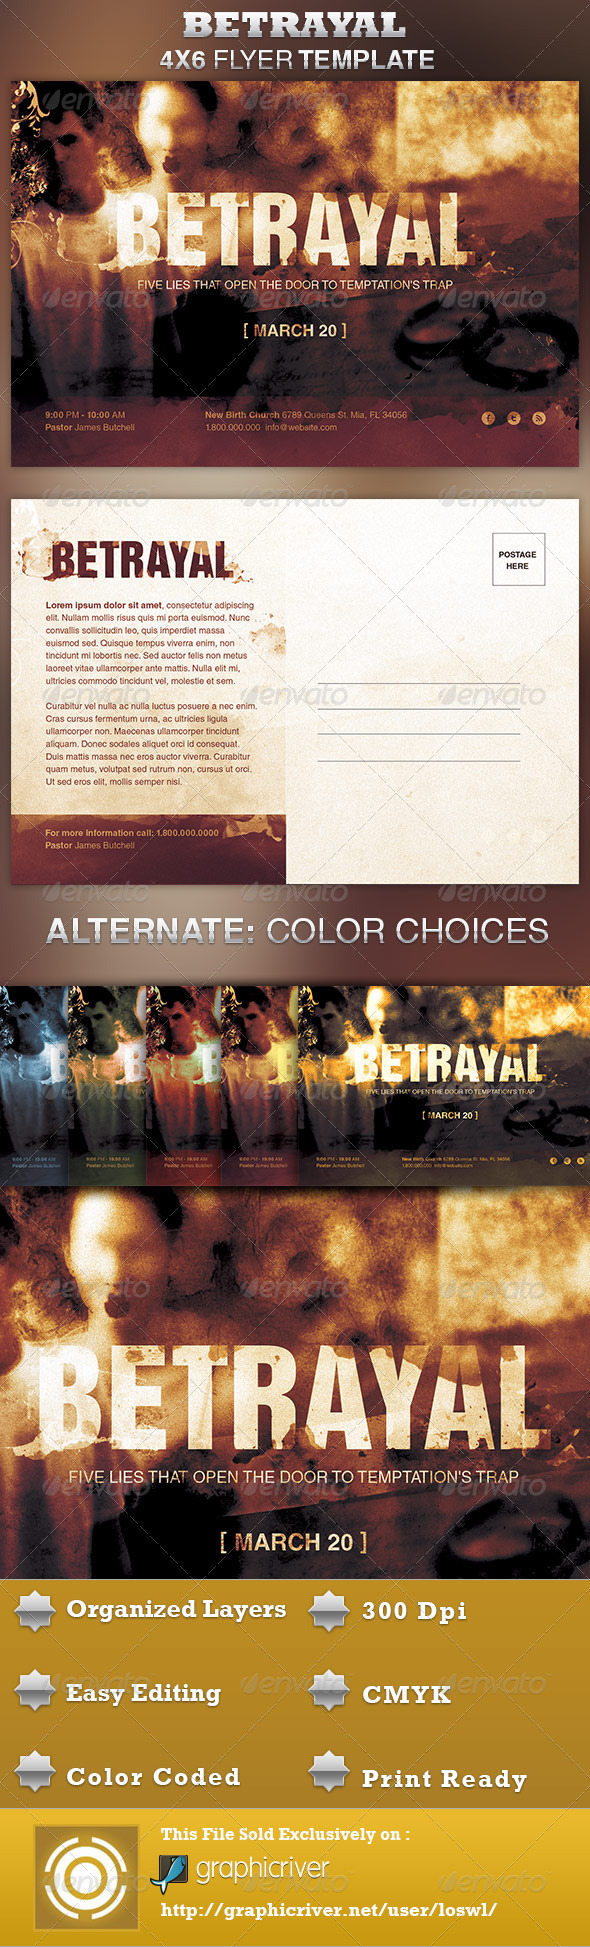 Betrayal Church Flyer Template - Church Flyers